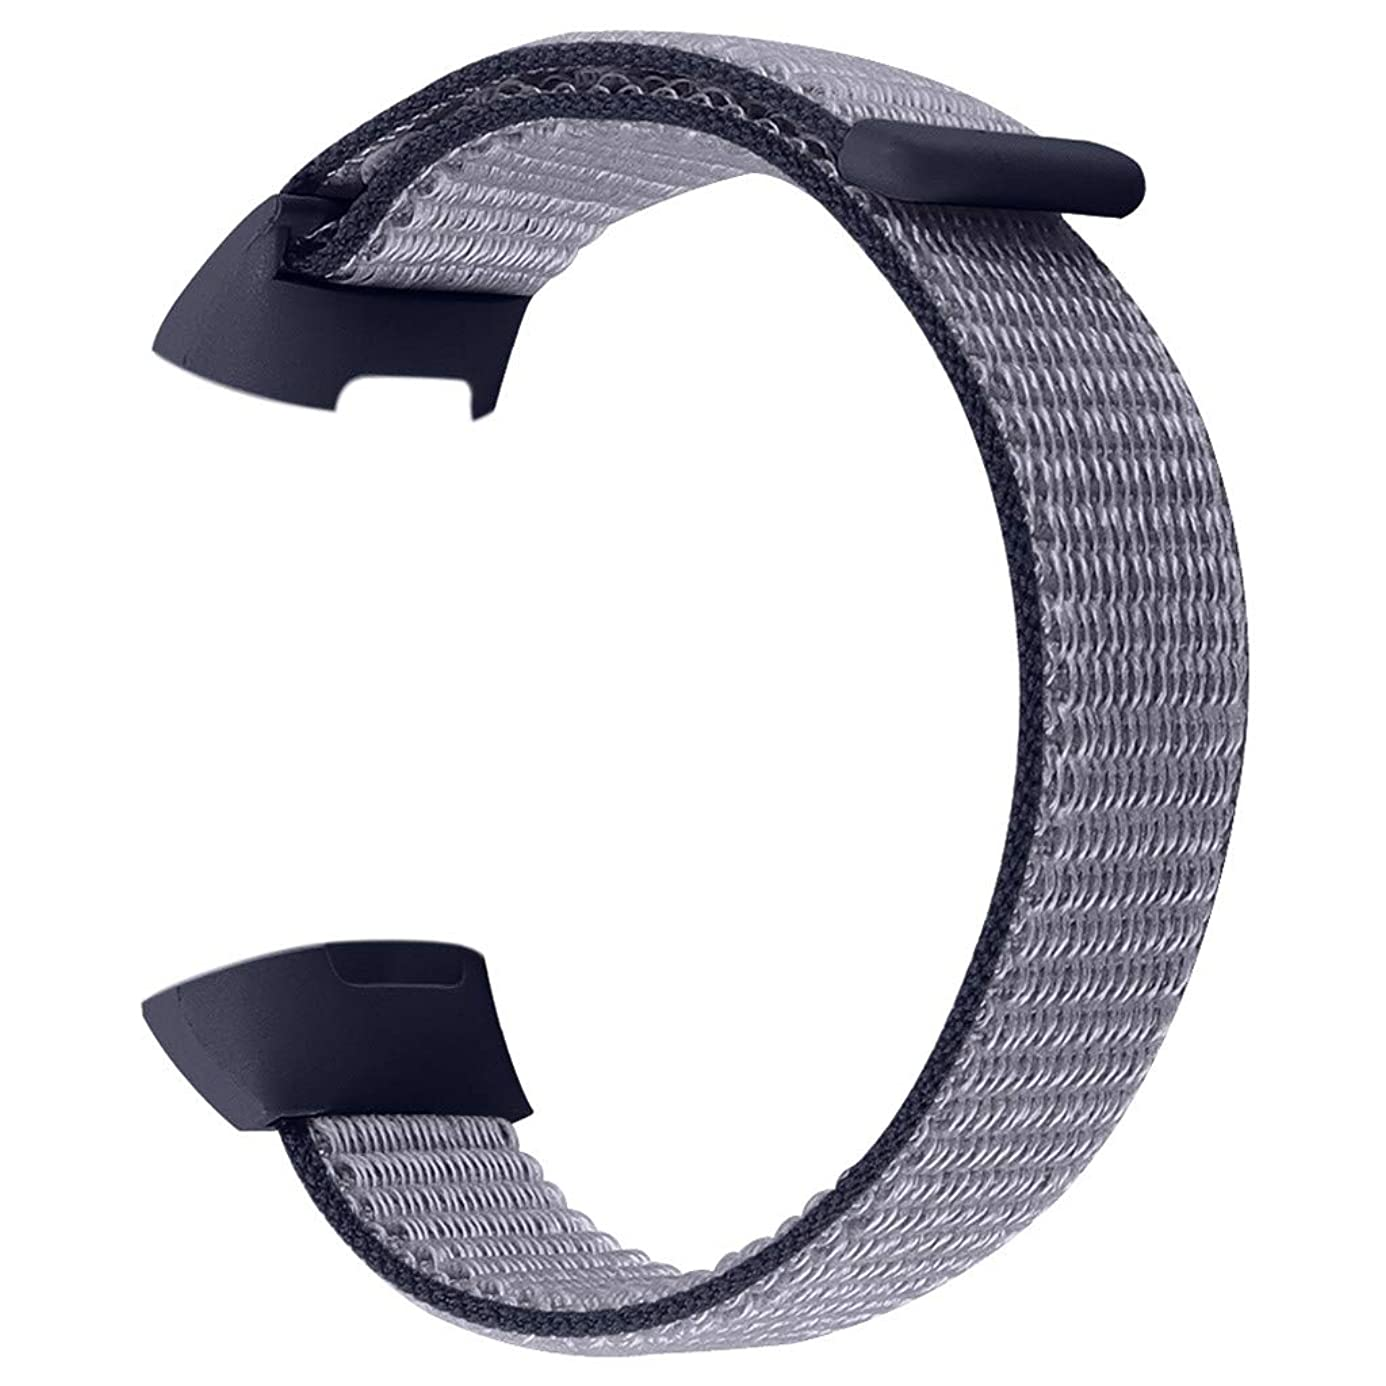 ?? Orcbee ?? _Large Replacement Soft Nylon Sport Loop Wrist Band Strap for Fitbit Charge 3